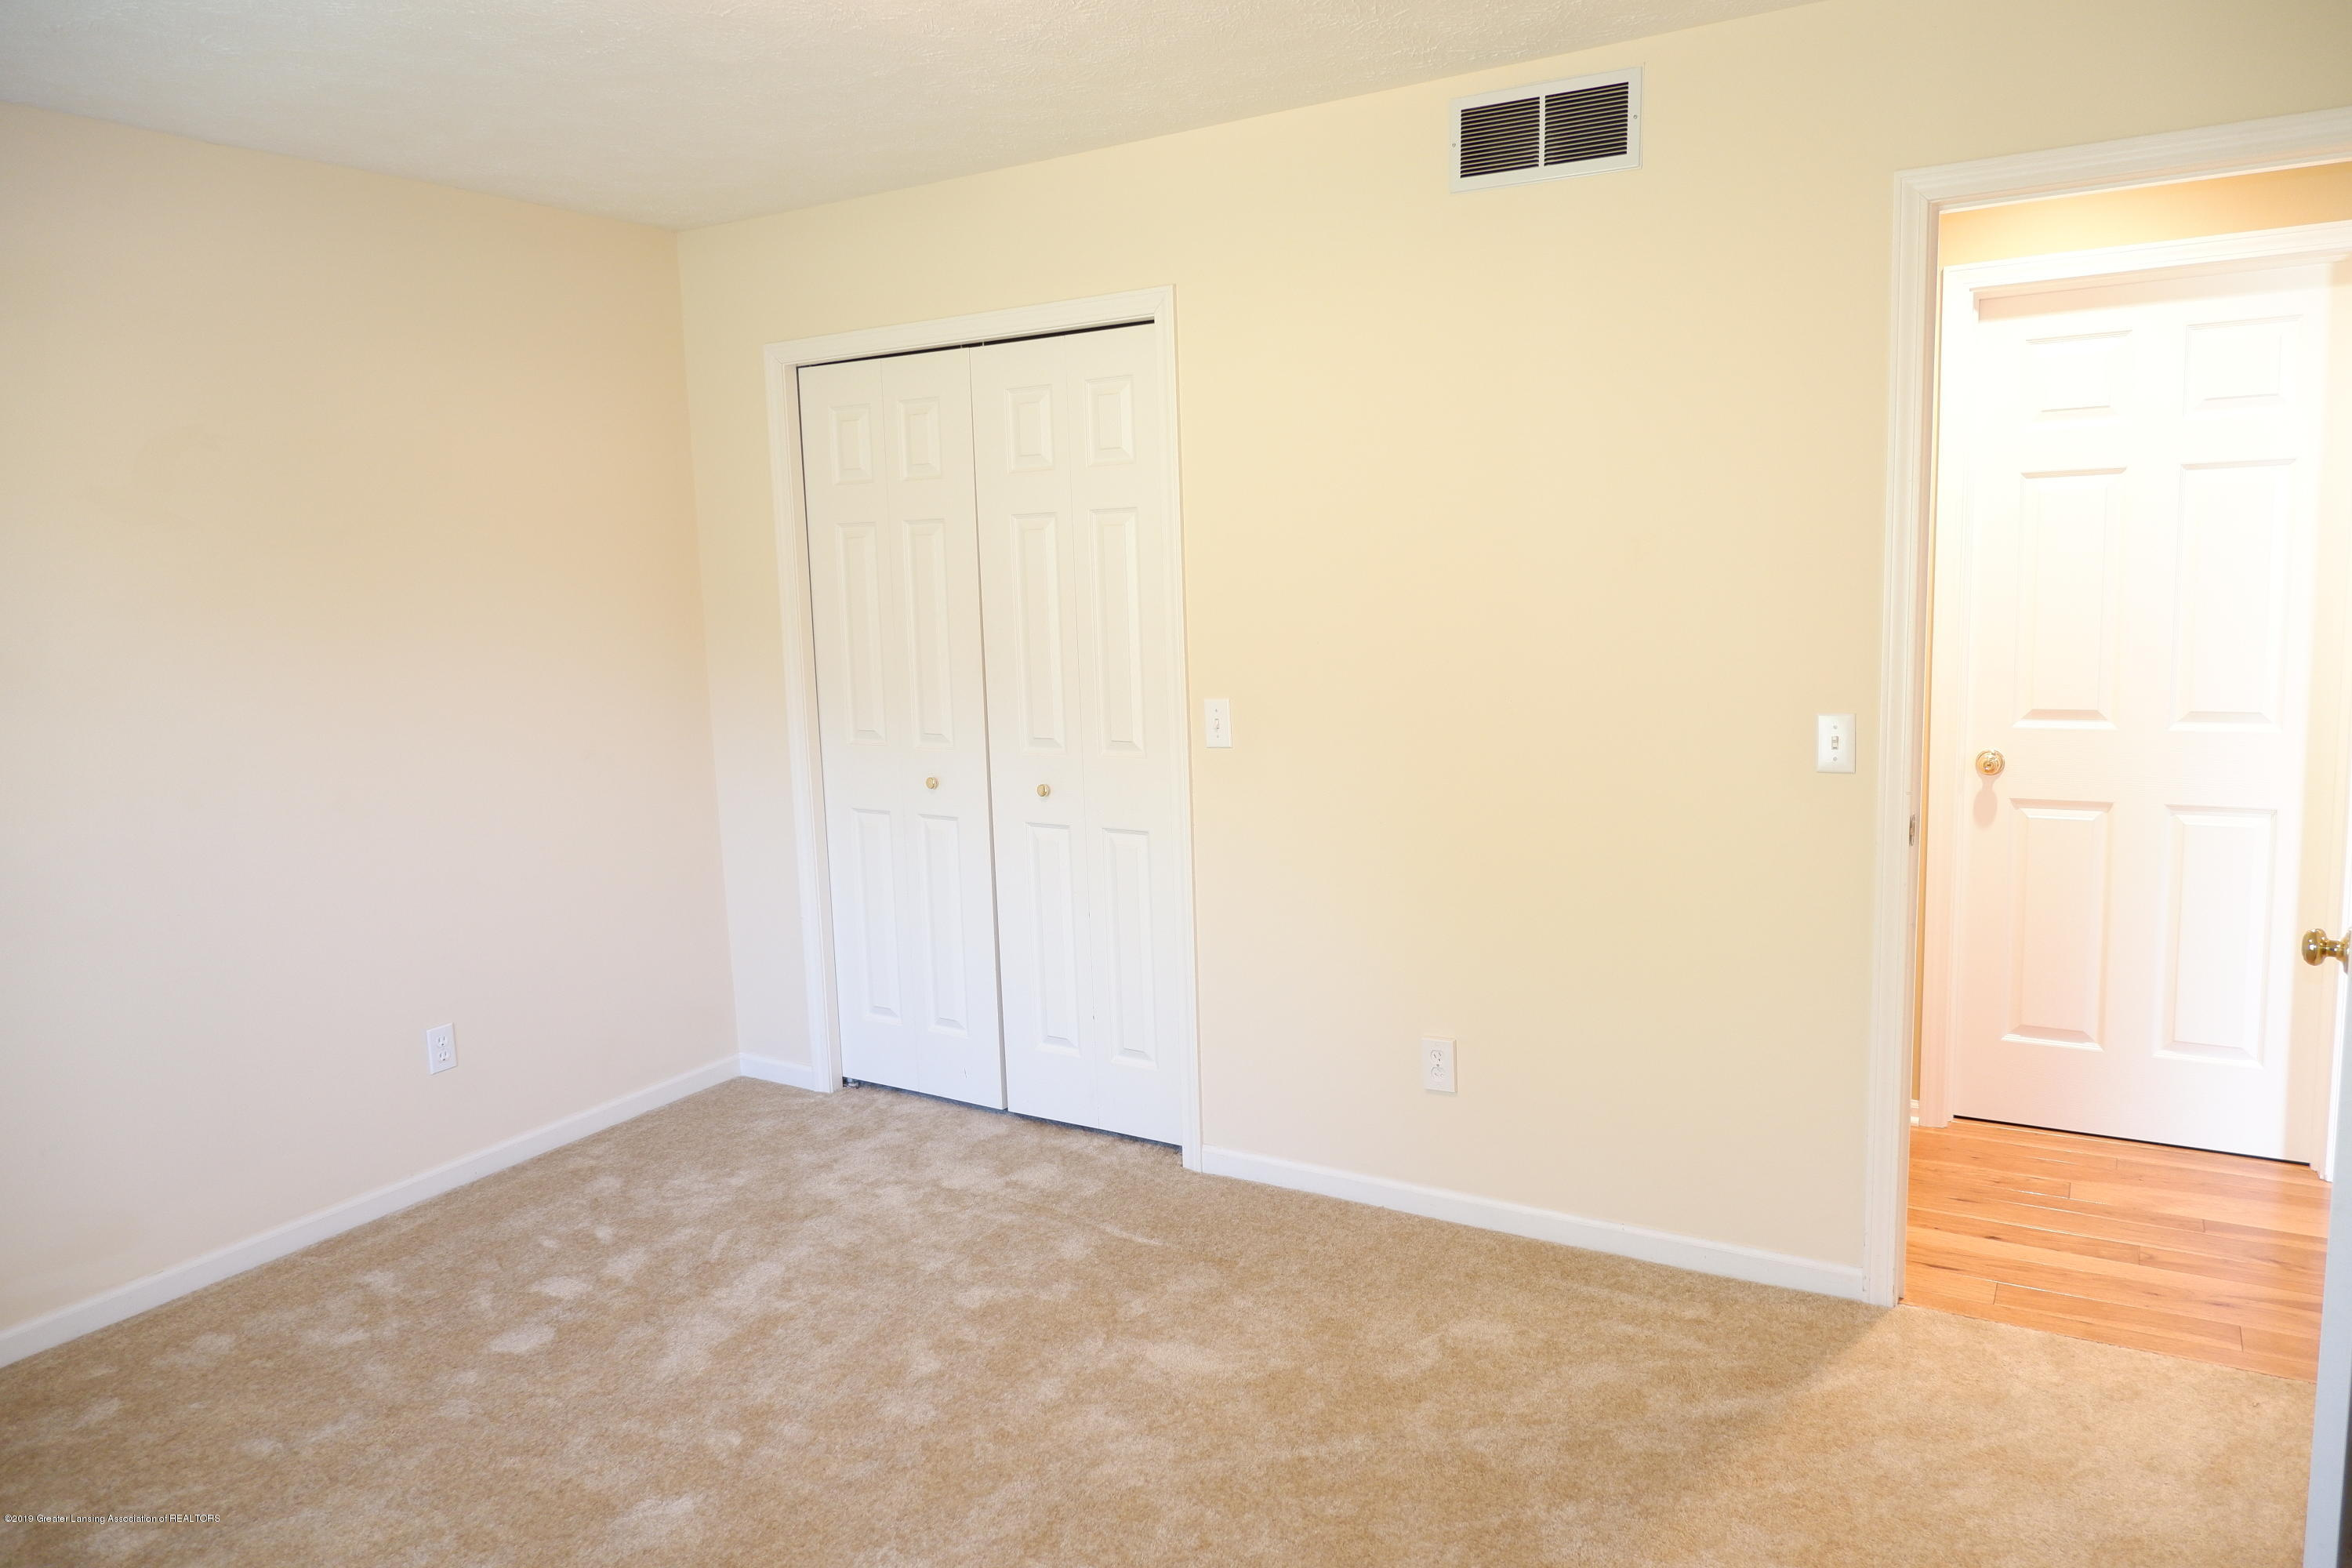 5250 E Hidden Lake Dr 89 - Closet in 2nd bedroom - 25